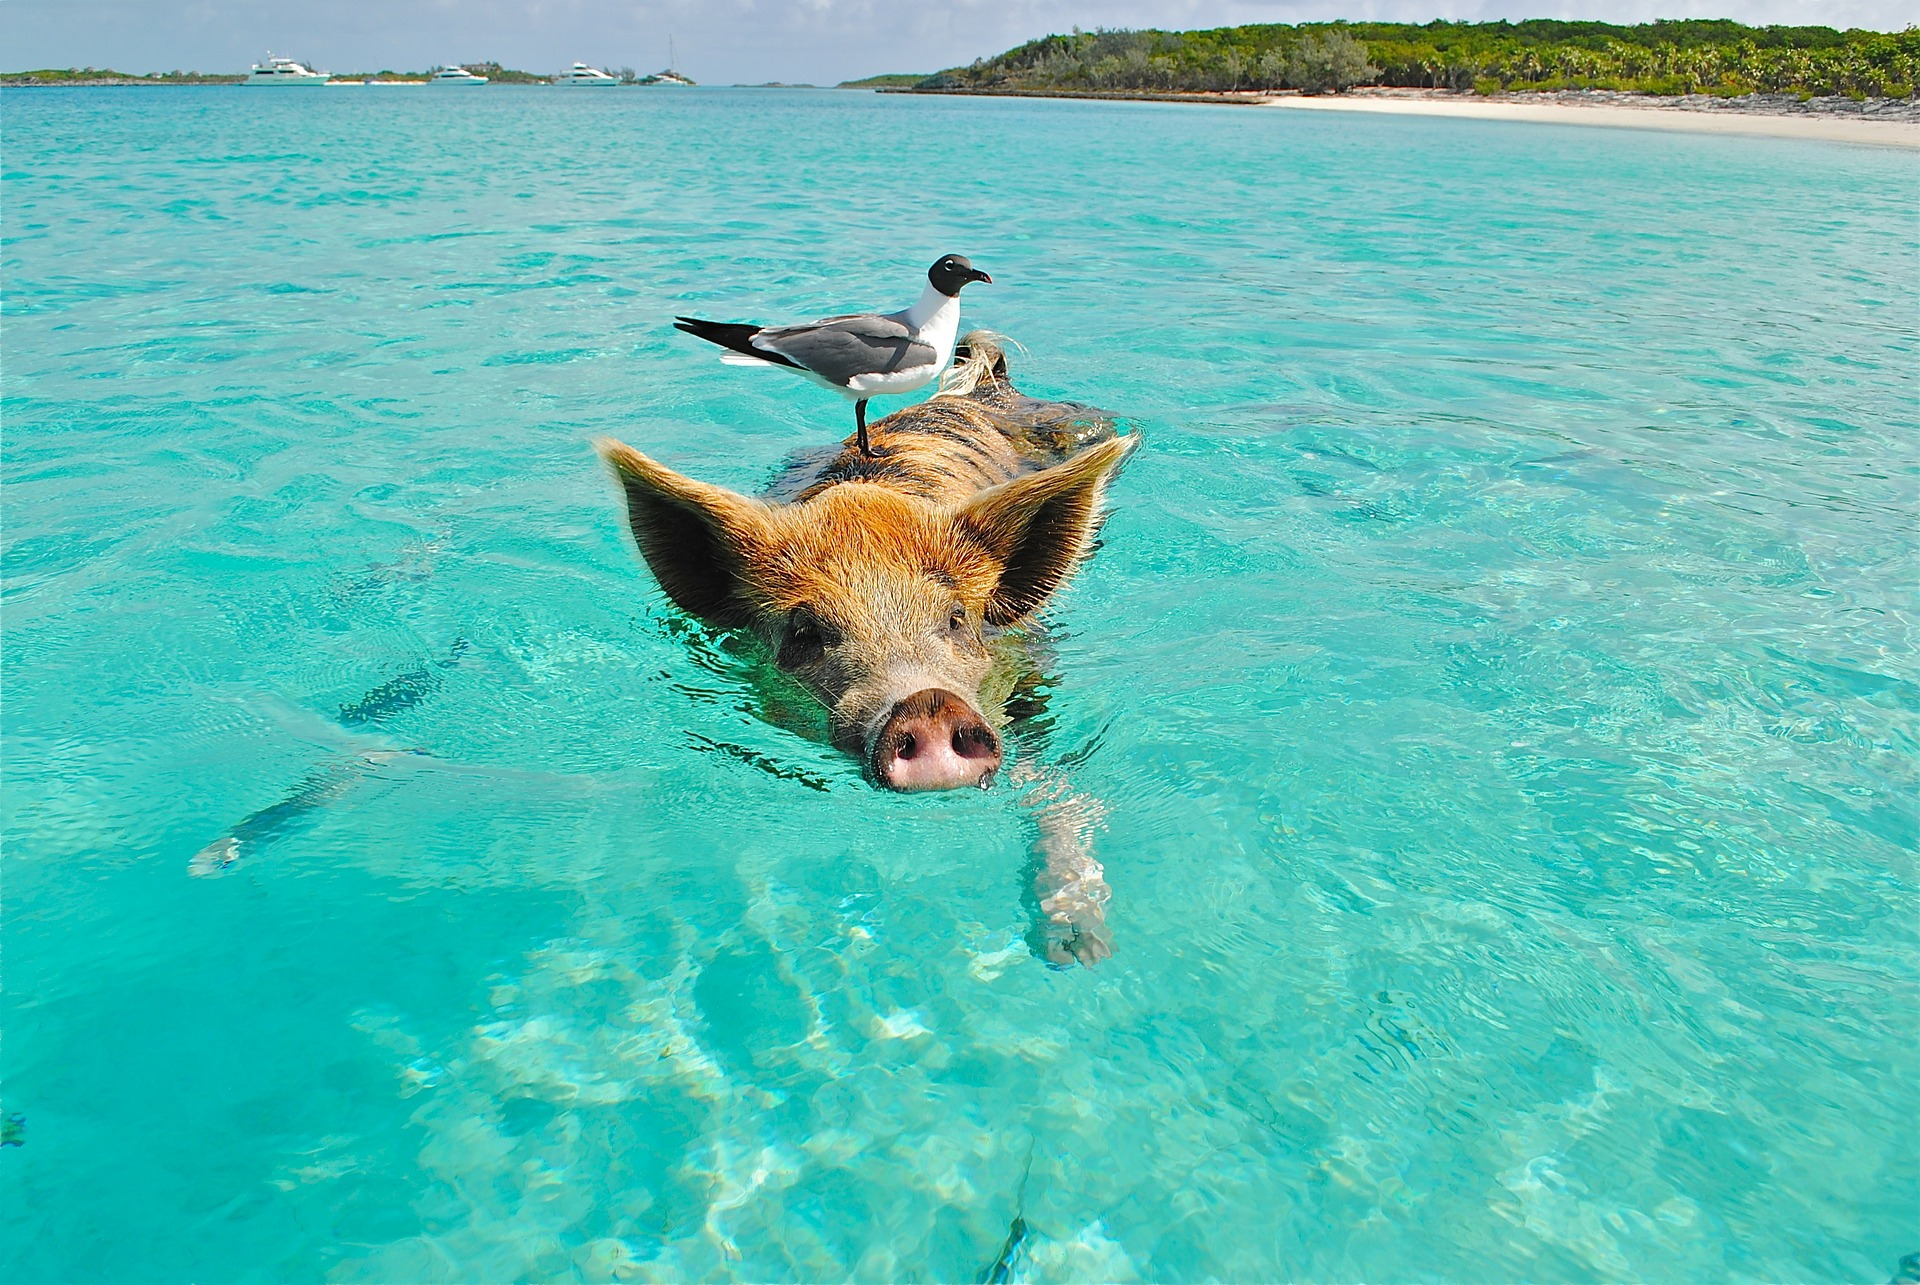 Swimming pig in the Caribbean